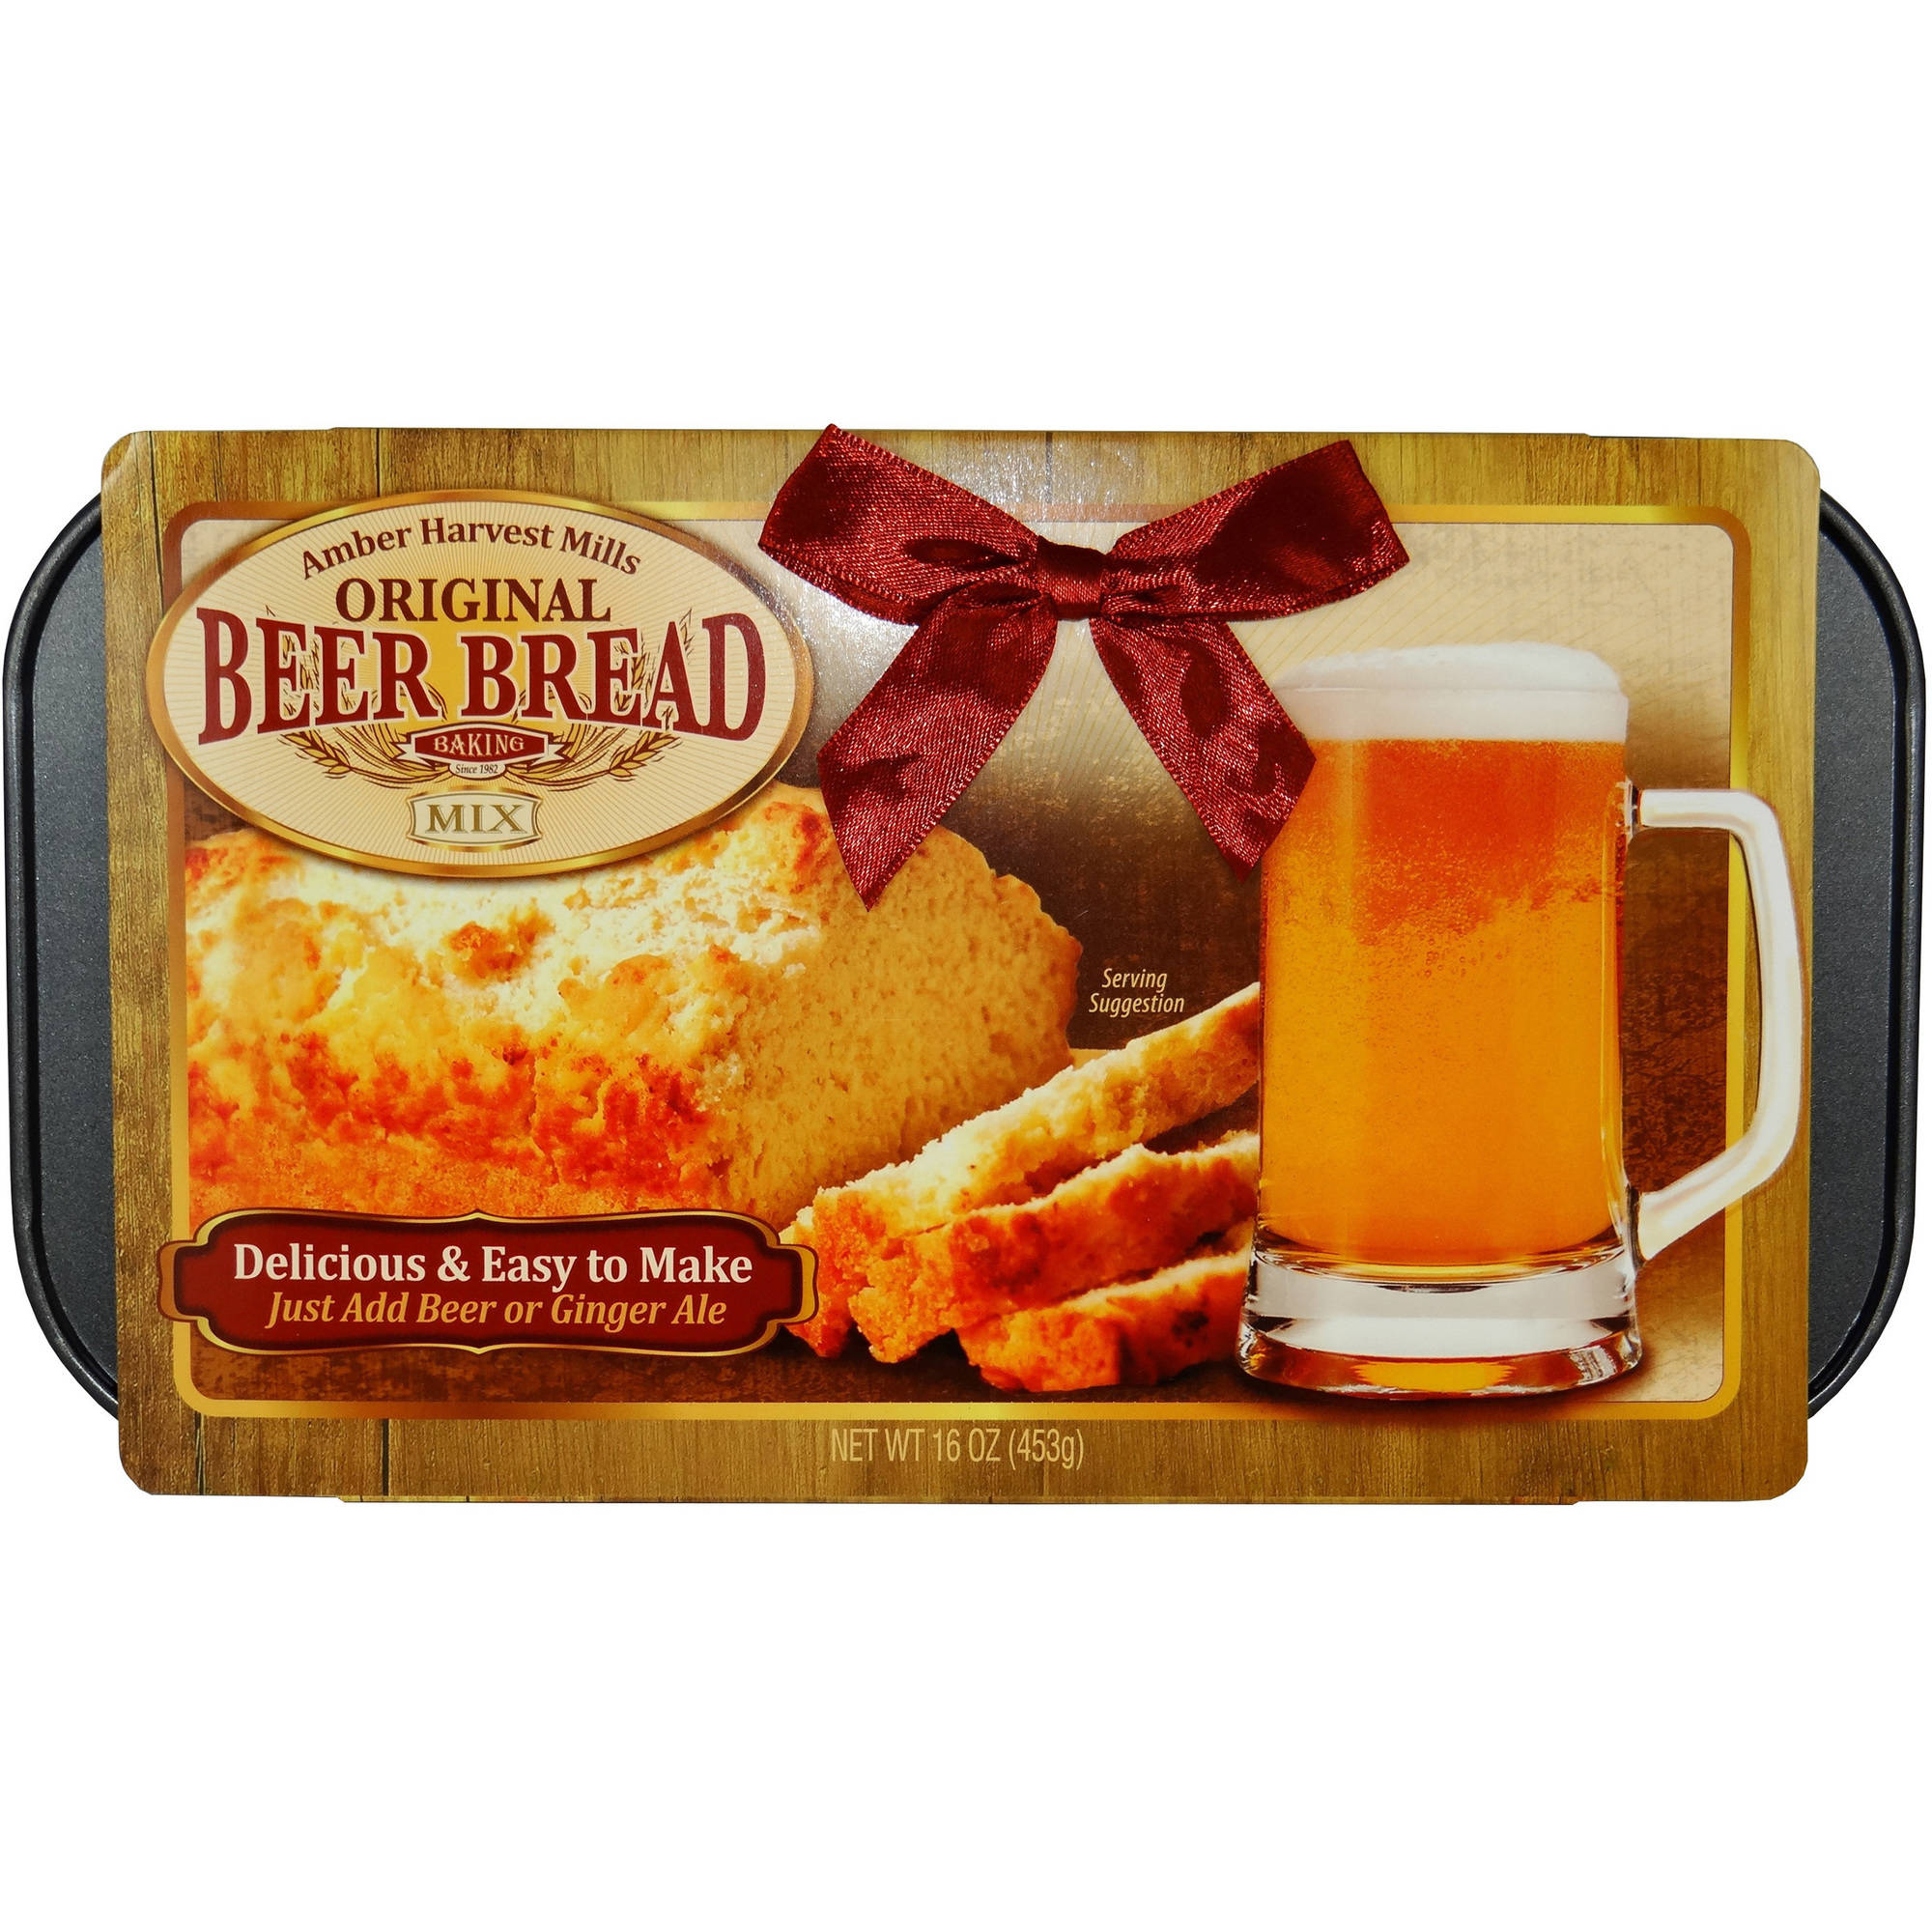 Amber Harvest Mills Beer Bread Mix Holiday Gift Set, 2 pc